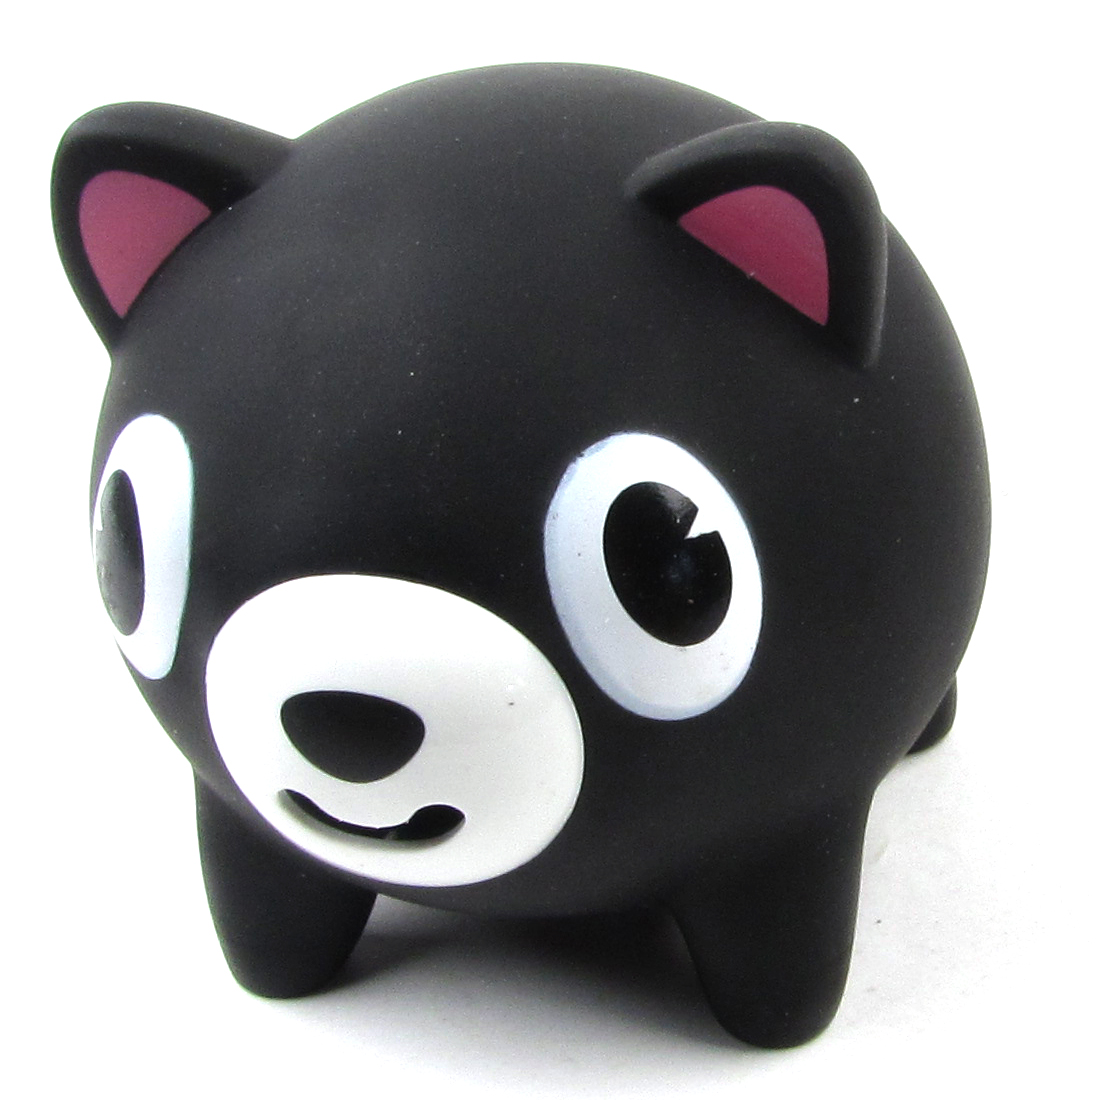 Child Squeeze Tongue Call Bell Toy Black Cartoon Abreact Pig Design